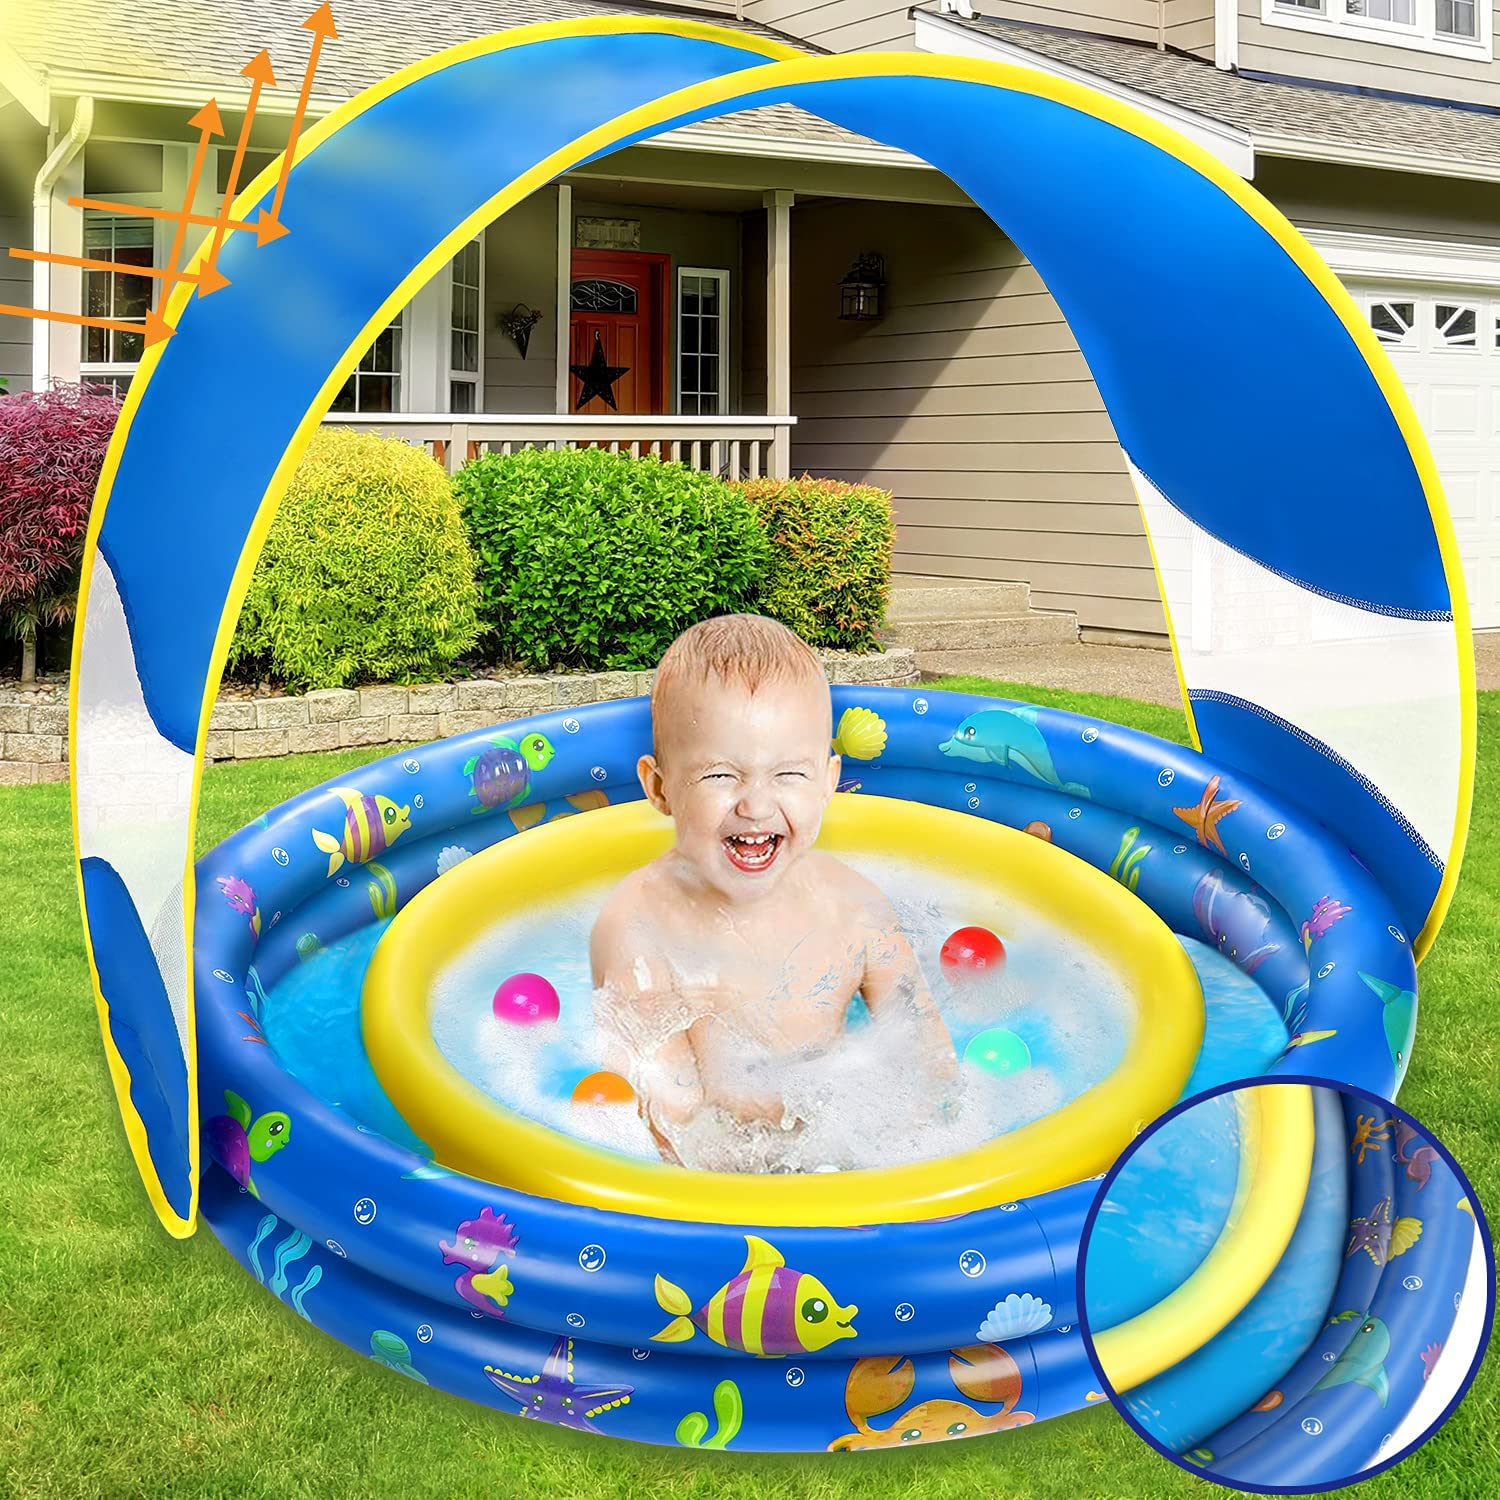 Inflatable San Antonio Mall Max 76% OFF Baby Pool Annular Sunshad Kiddie Removable with